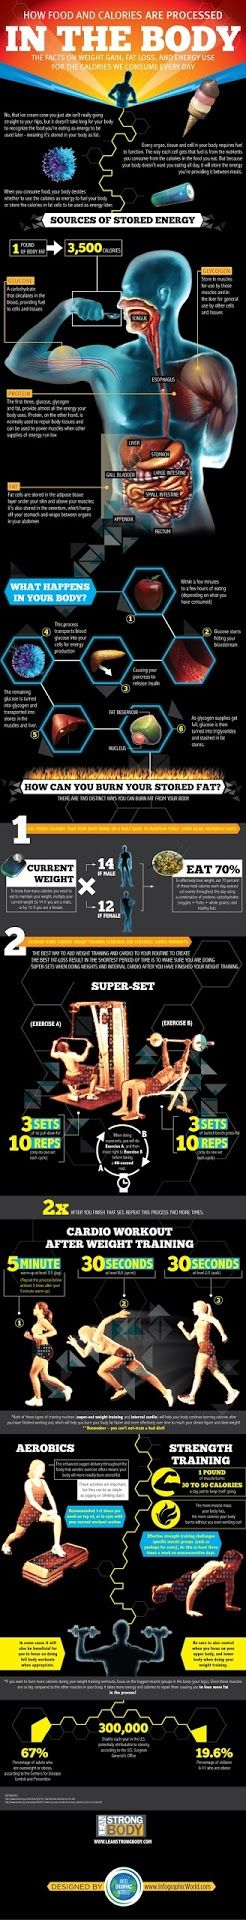 How Can You Burn Your Stored Fat? Understanding Weight Gain, Fat Loss, and Energy Use for the Calories we Consume [Infographic]